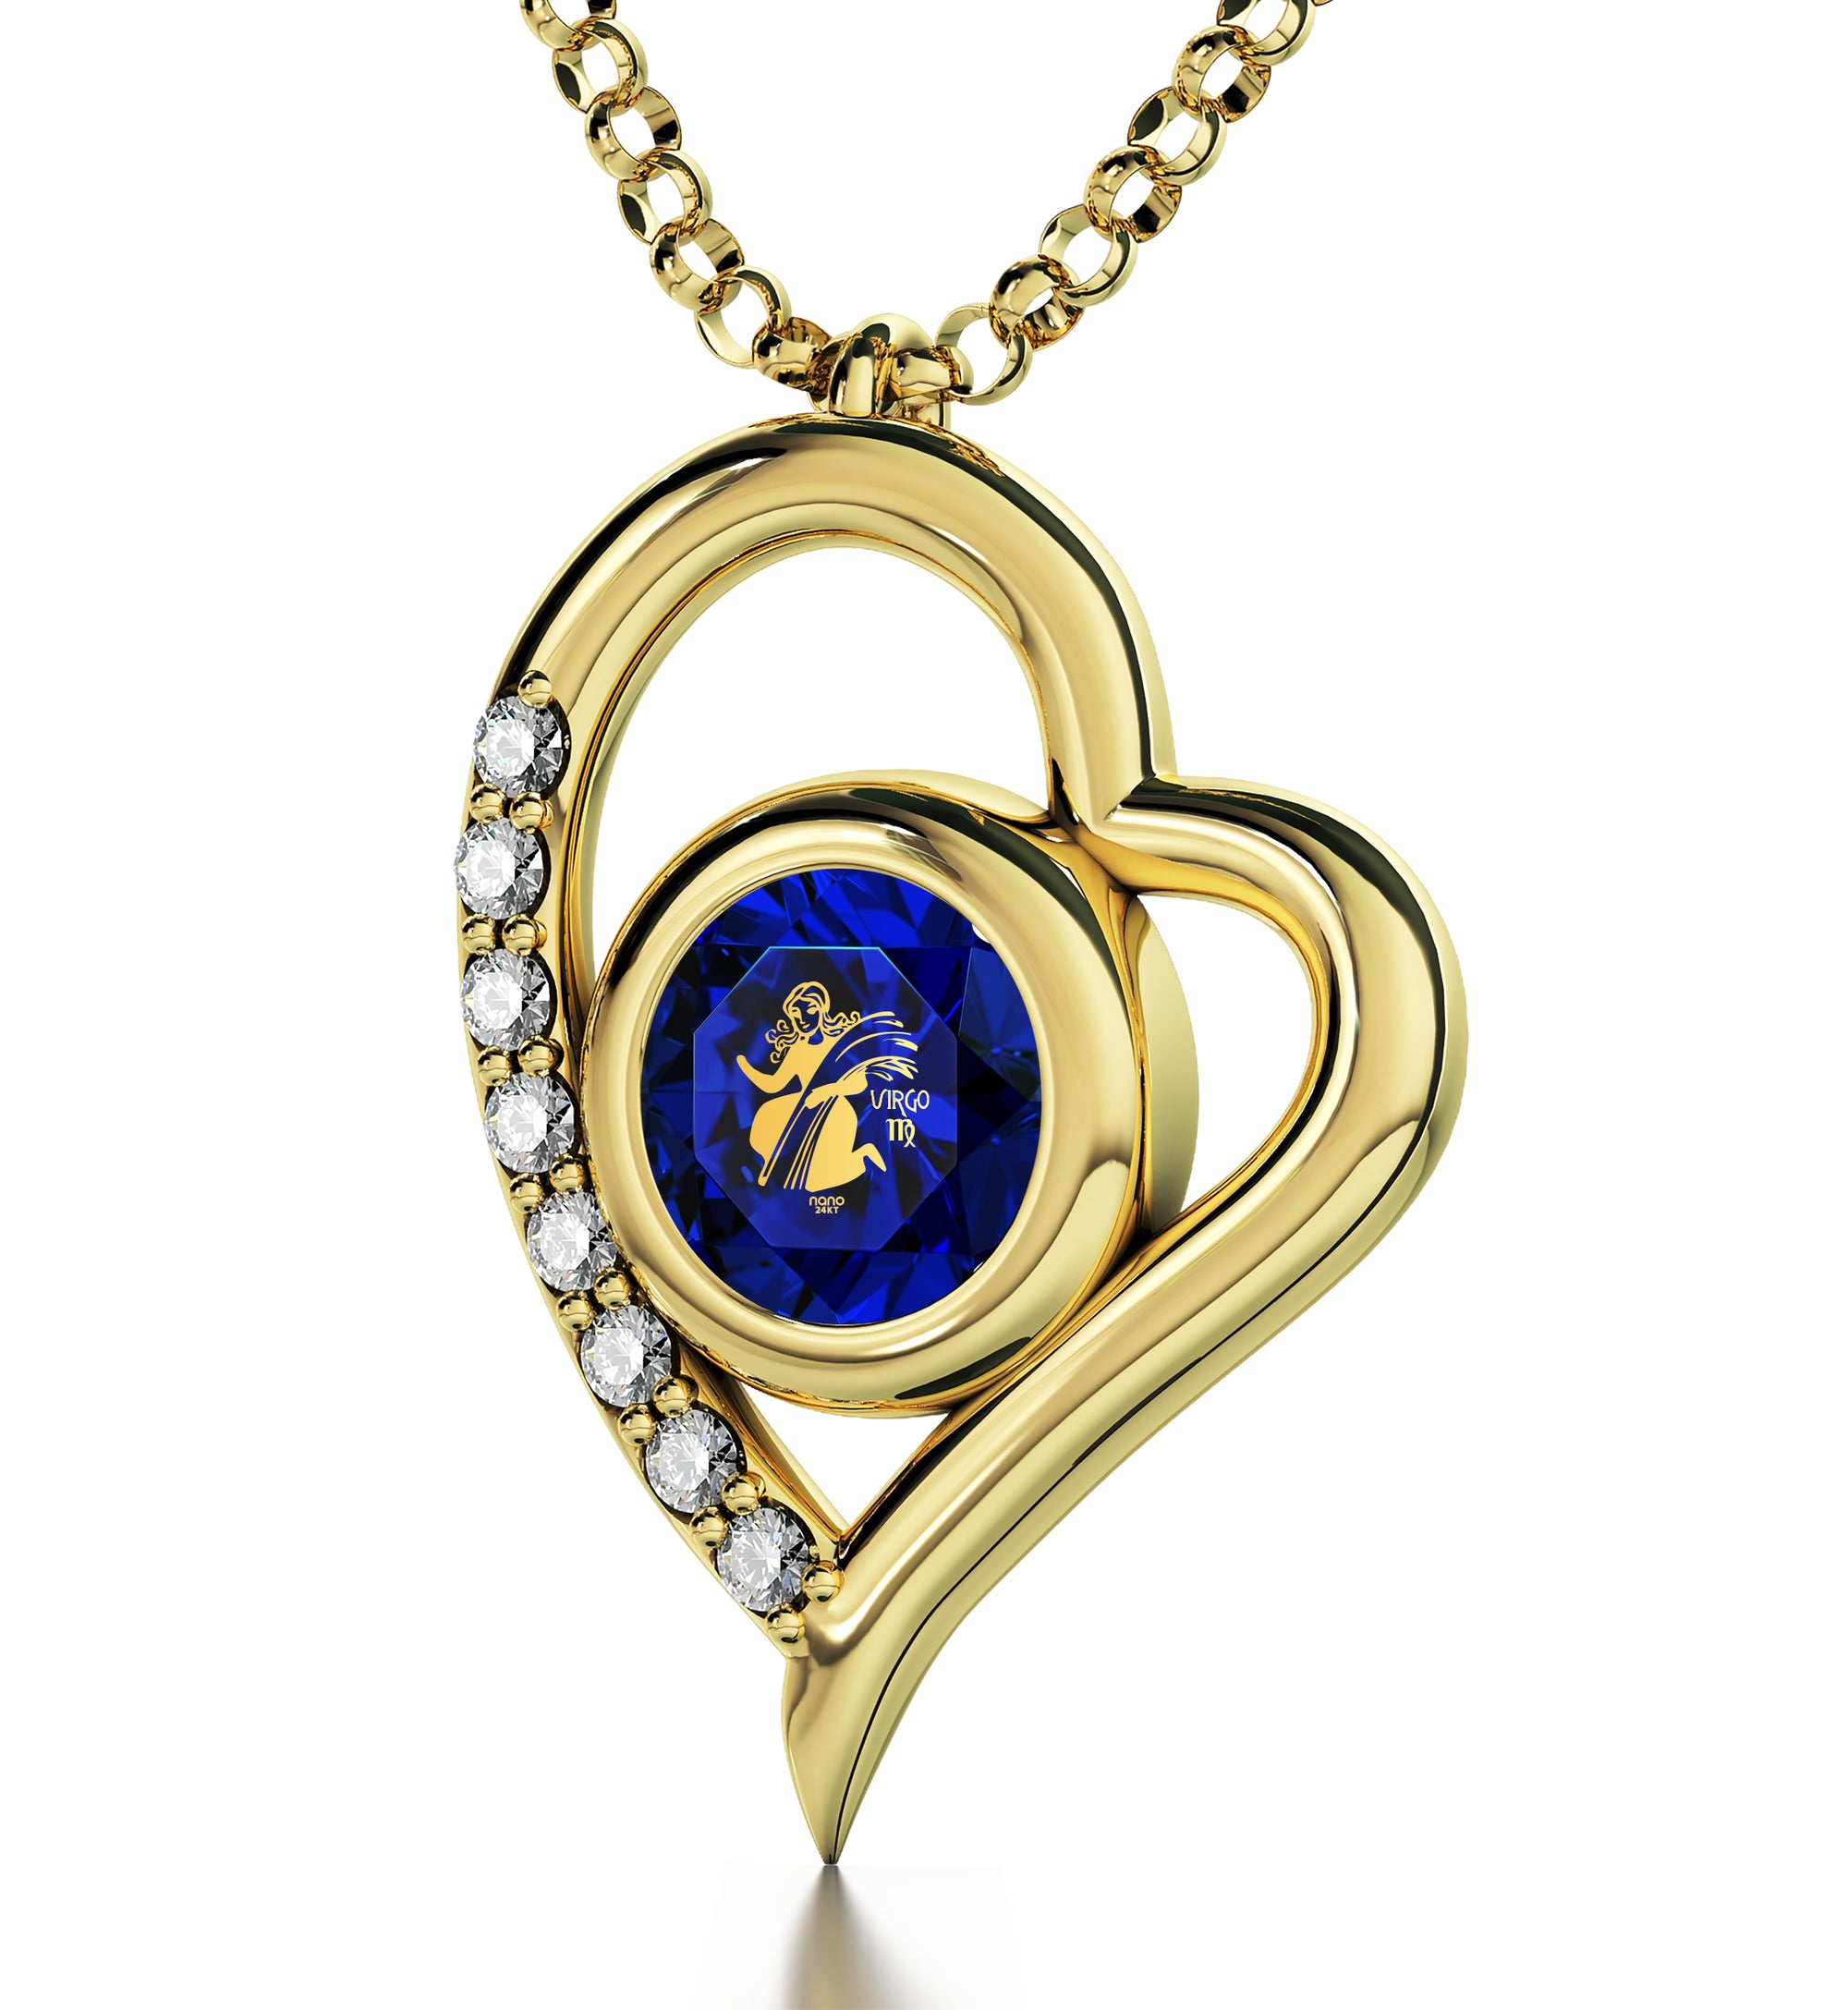 e virgo gold empire comm missy ainara kira necklace